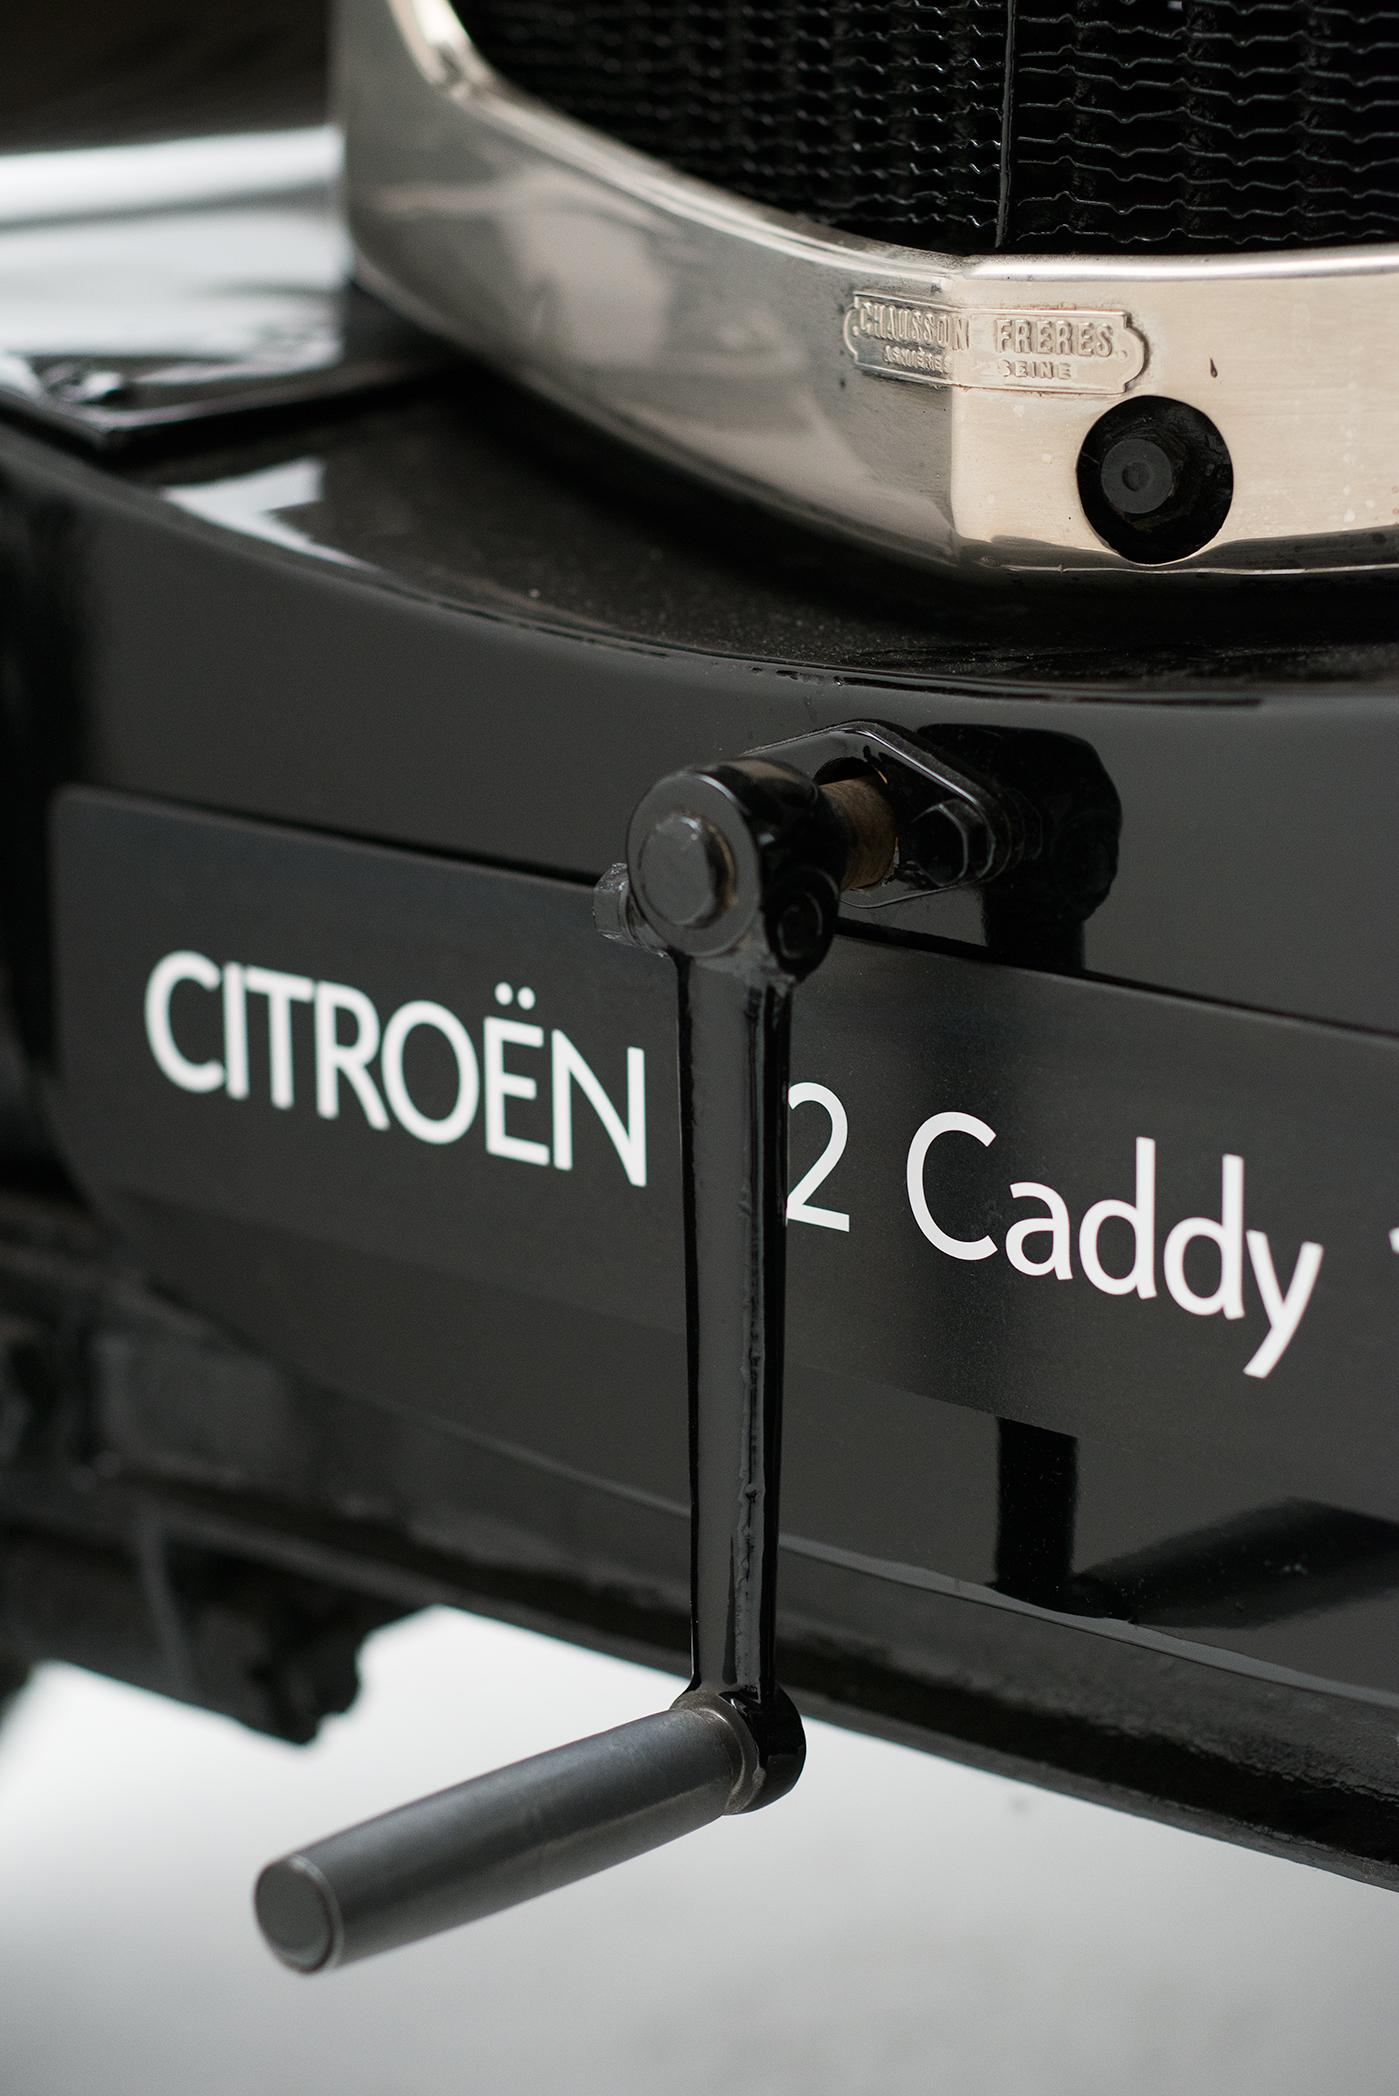 B2 Caddy - Detail